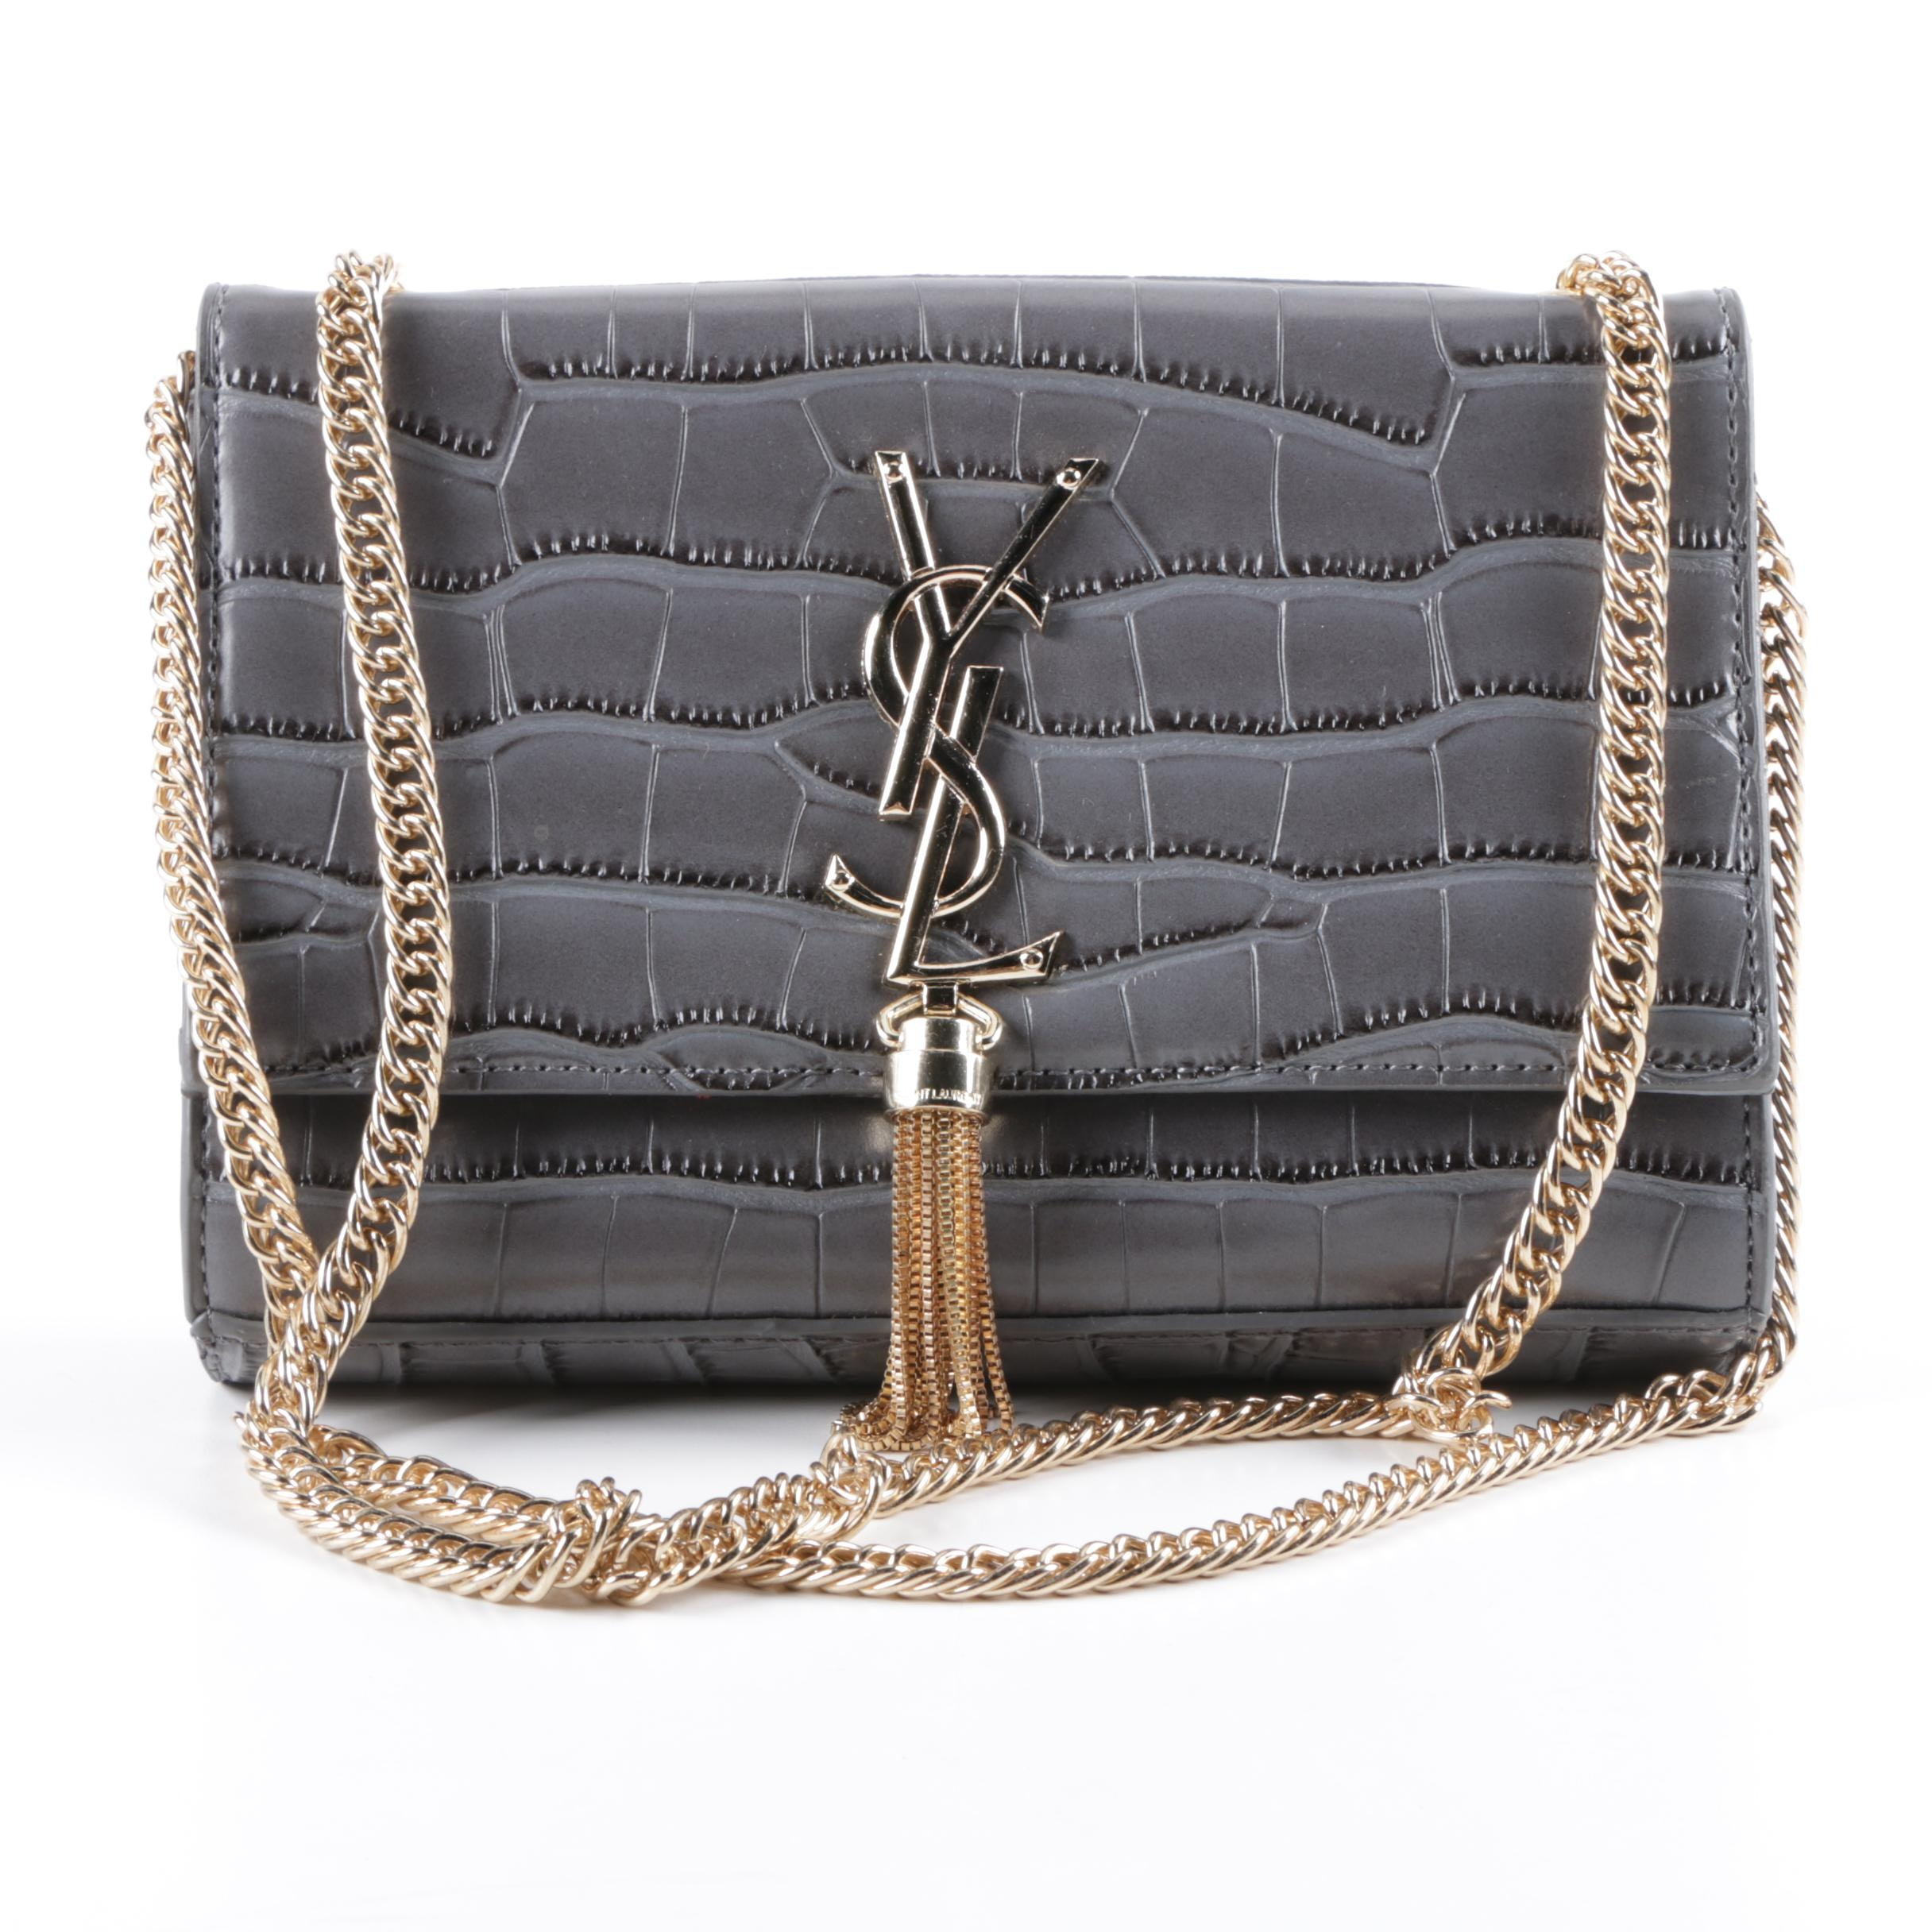 Yves Saint Laurent Embossed Convertible Clutch